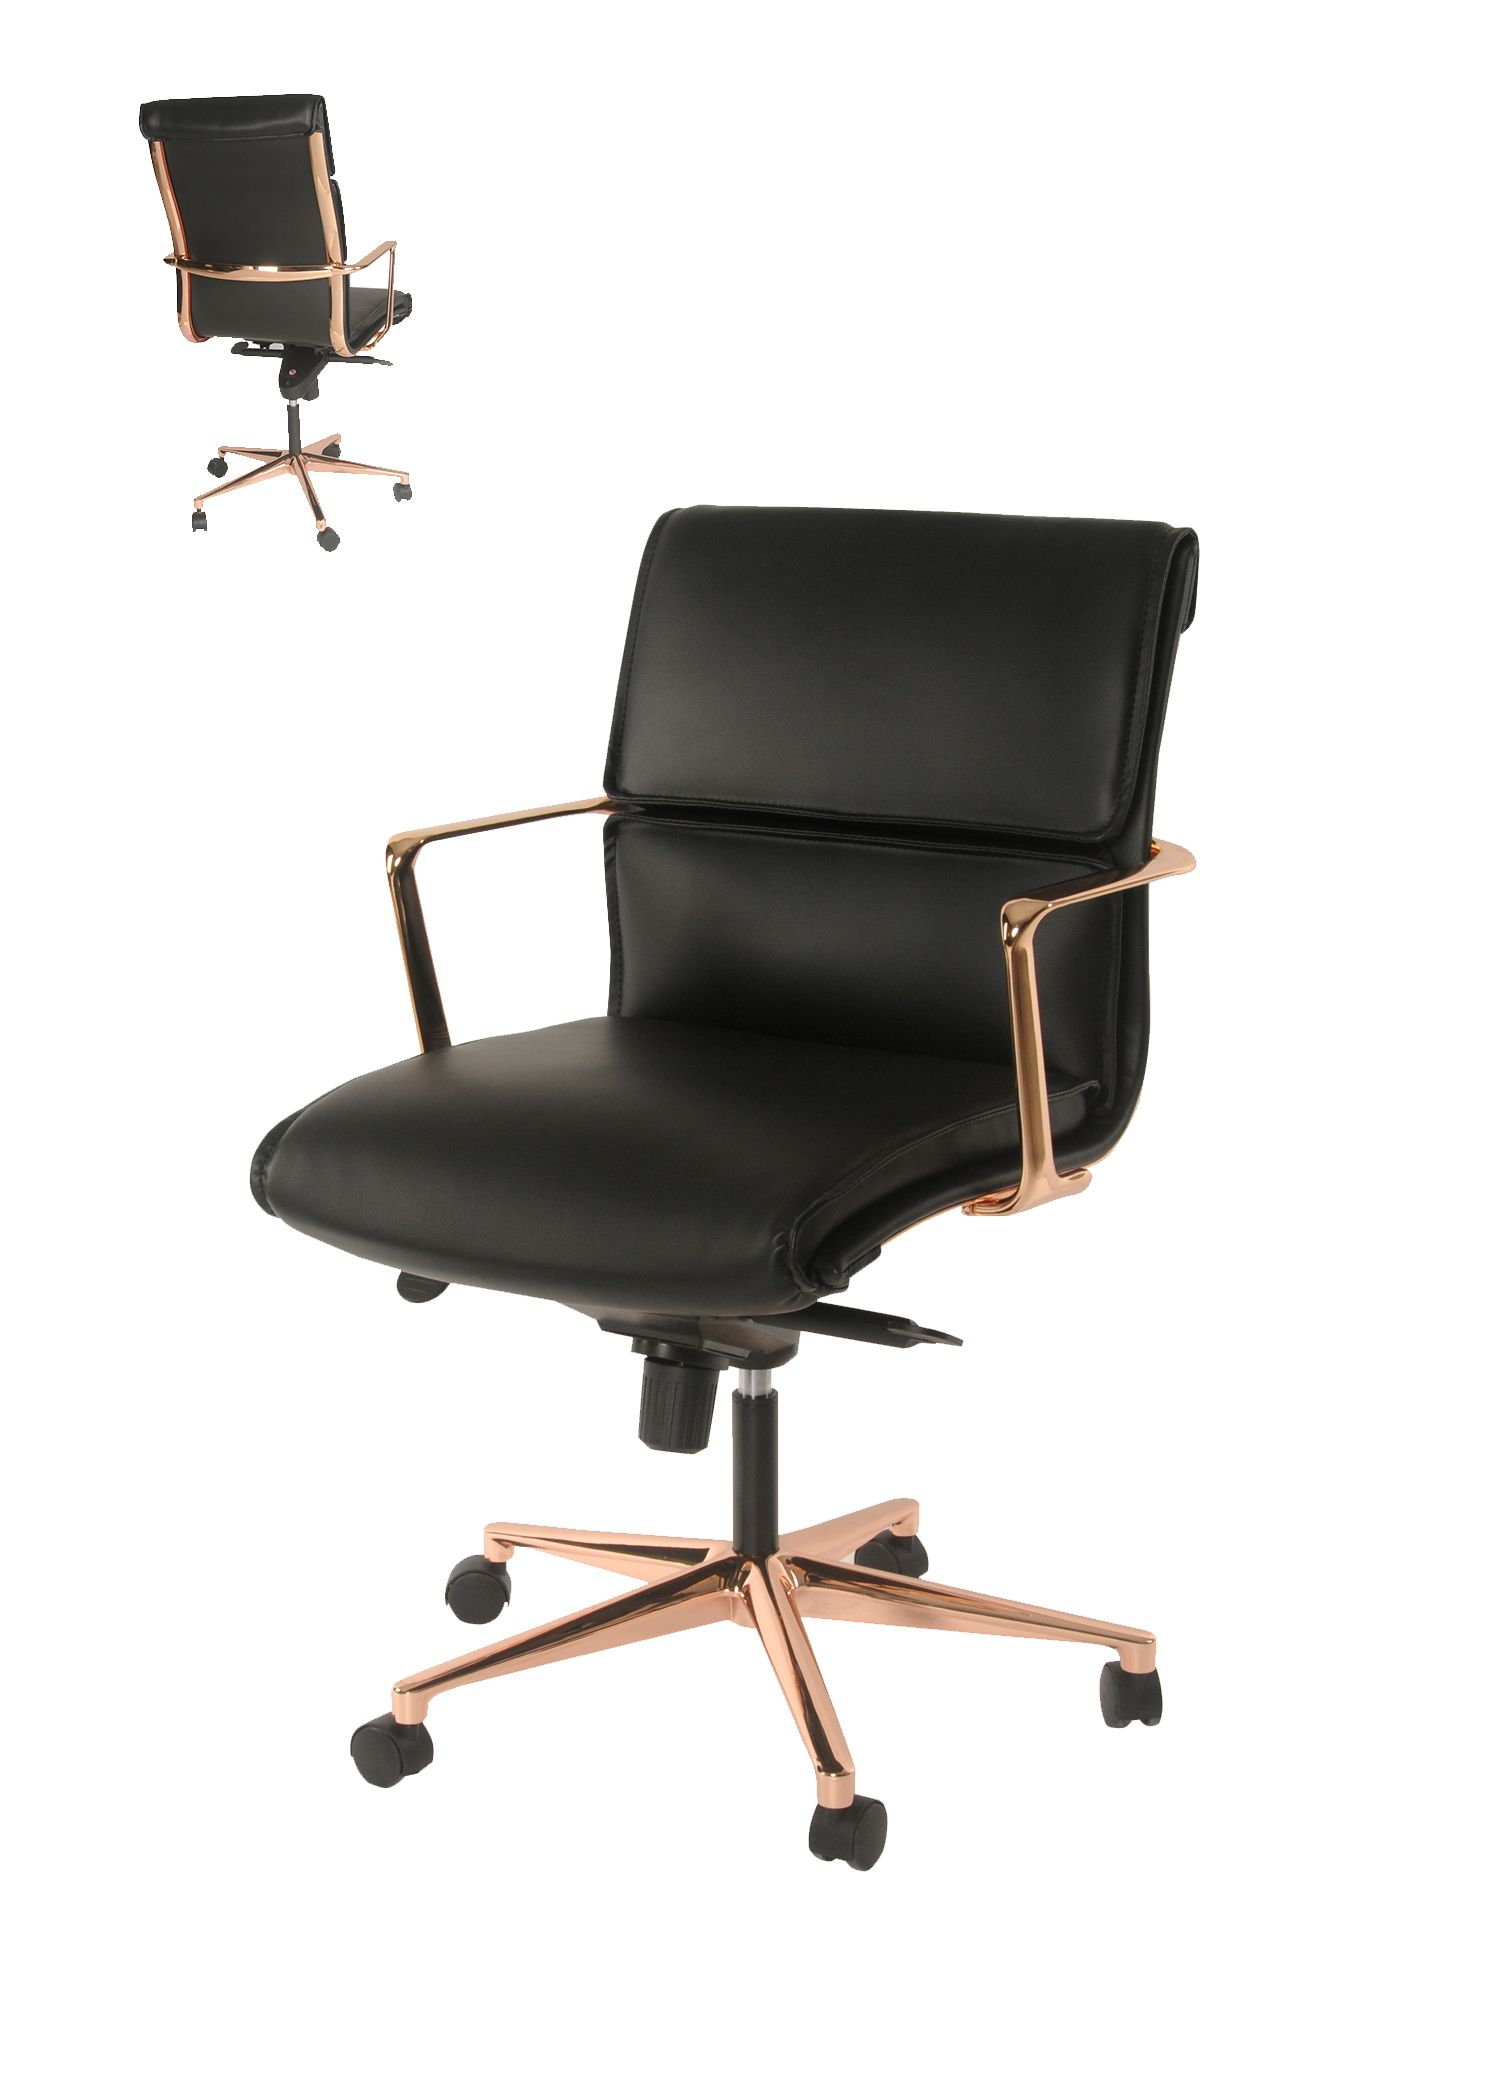 Wilson Pu Low Back Office Chair Gold Base Black Npd Chair Office Chair Home